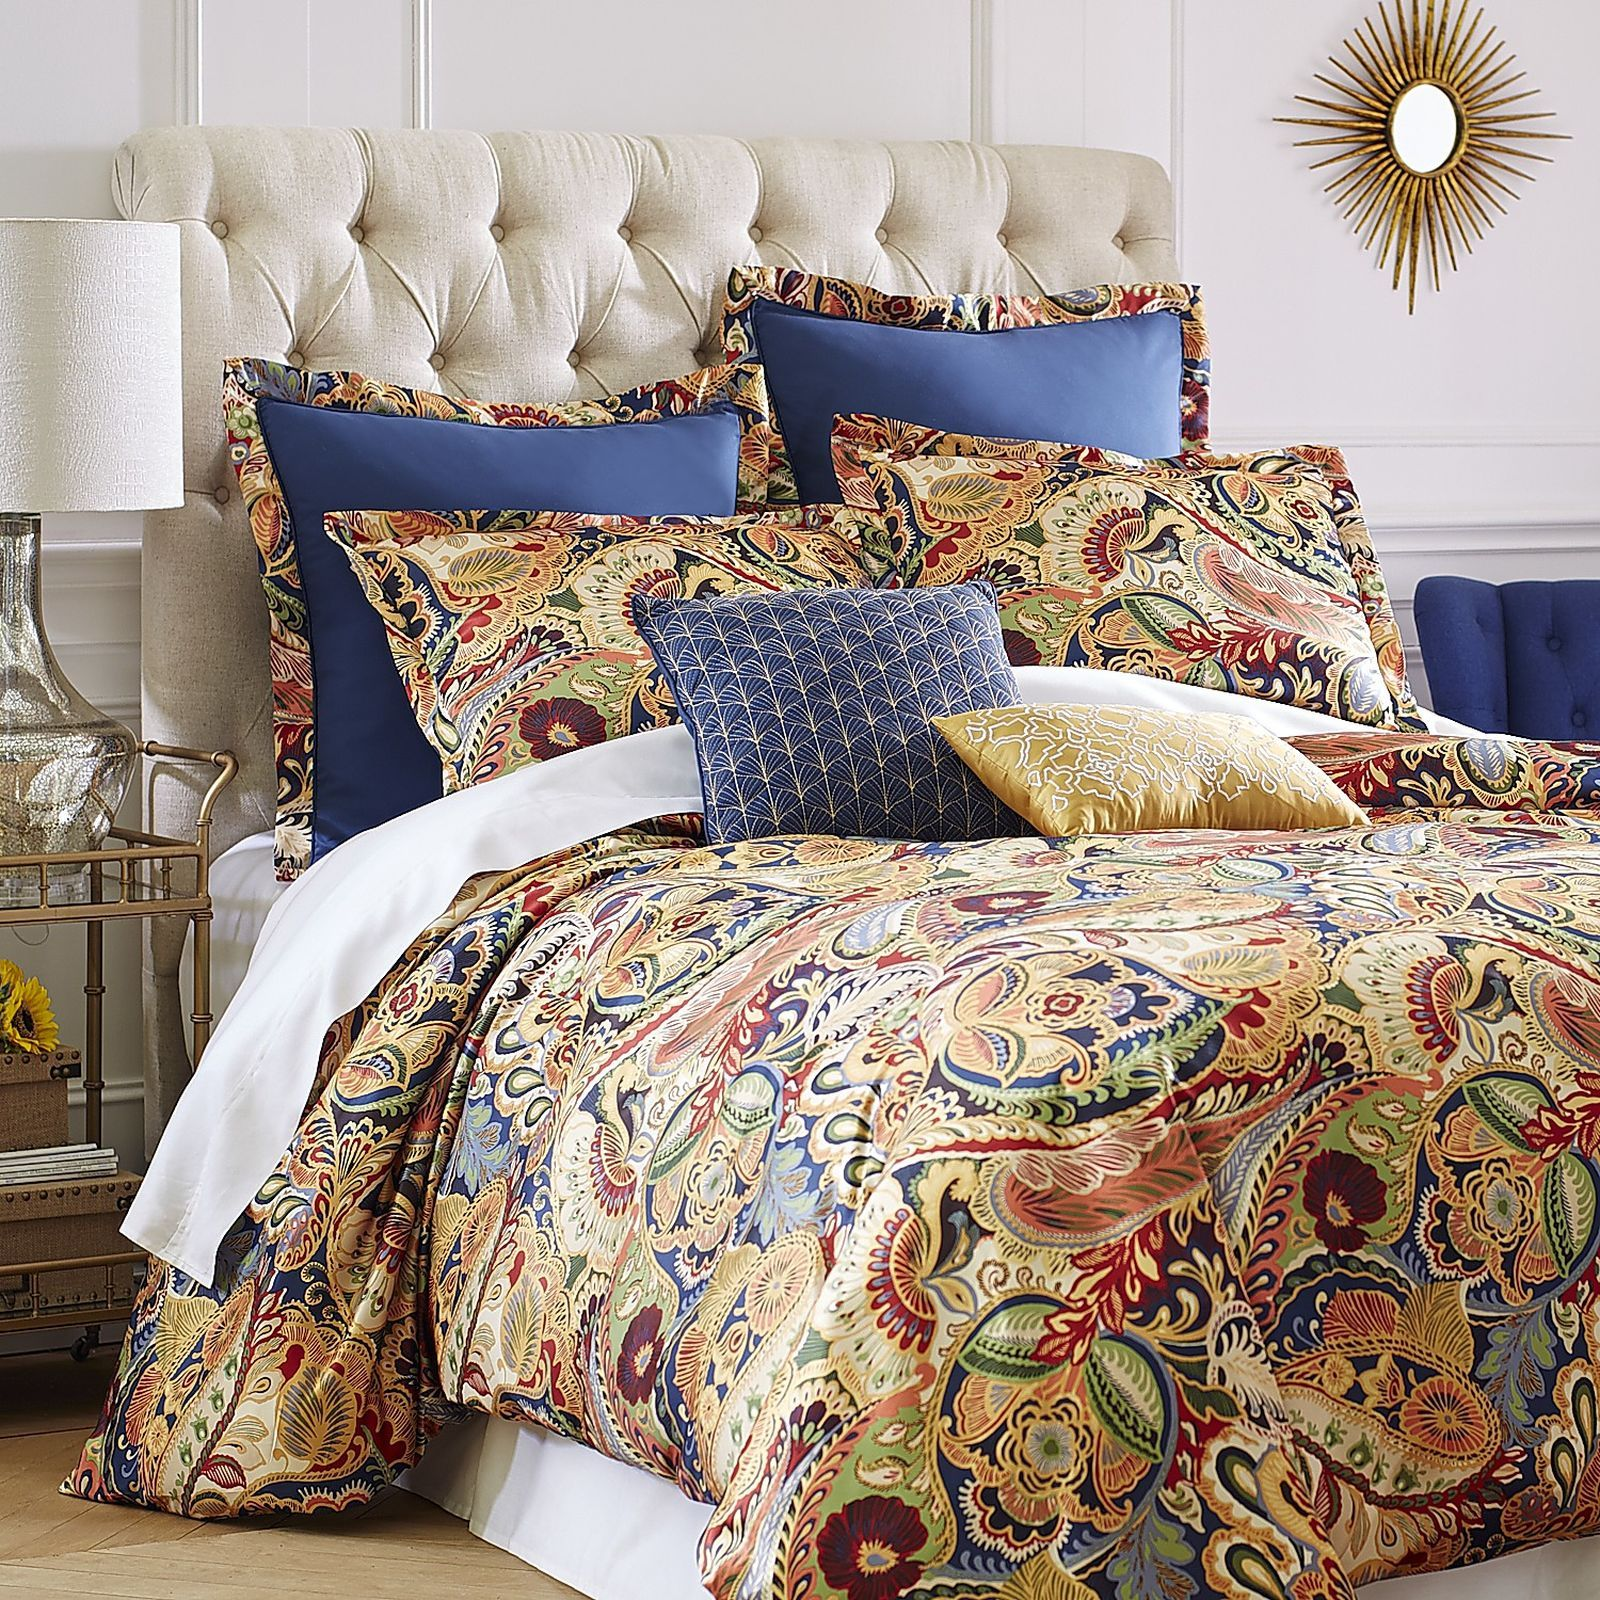 inc nmk piece bed textiles design set covers pdx hotel wayfair reviews california den cover bath luxe paisley duvet